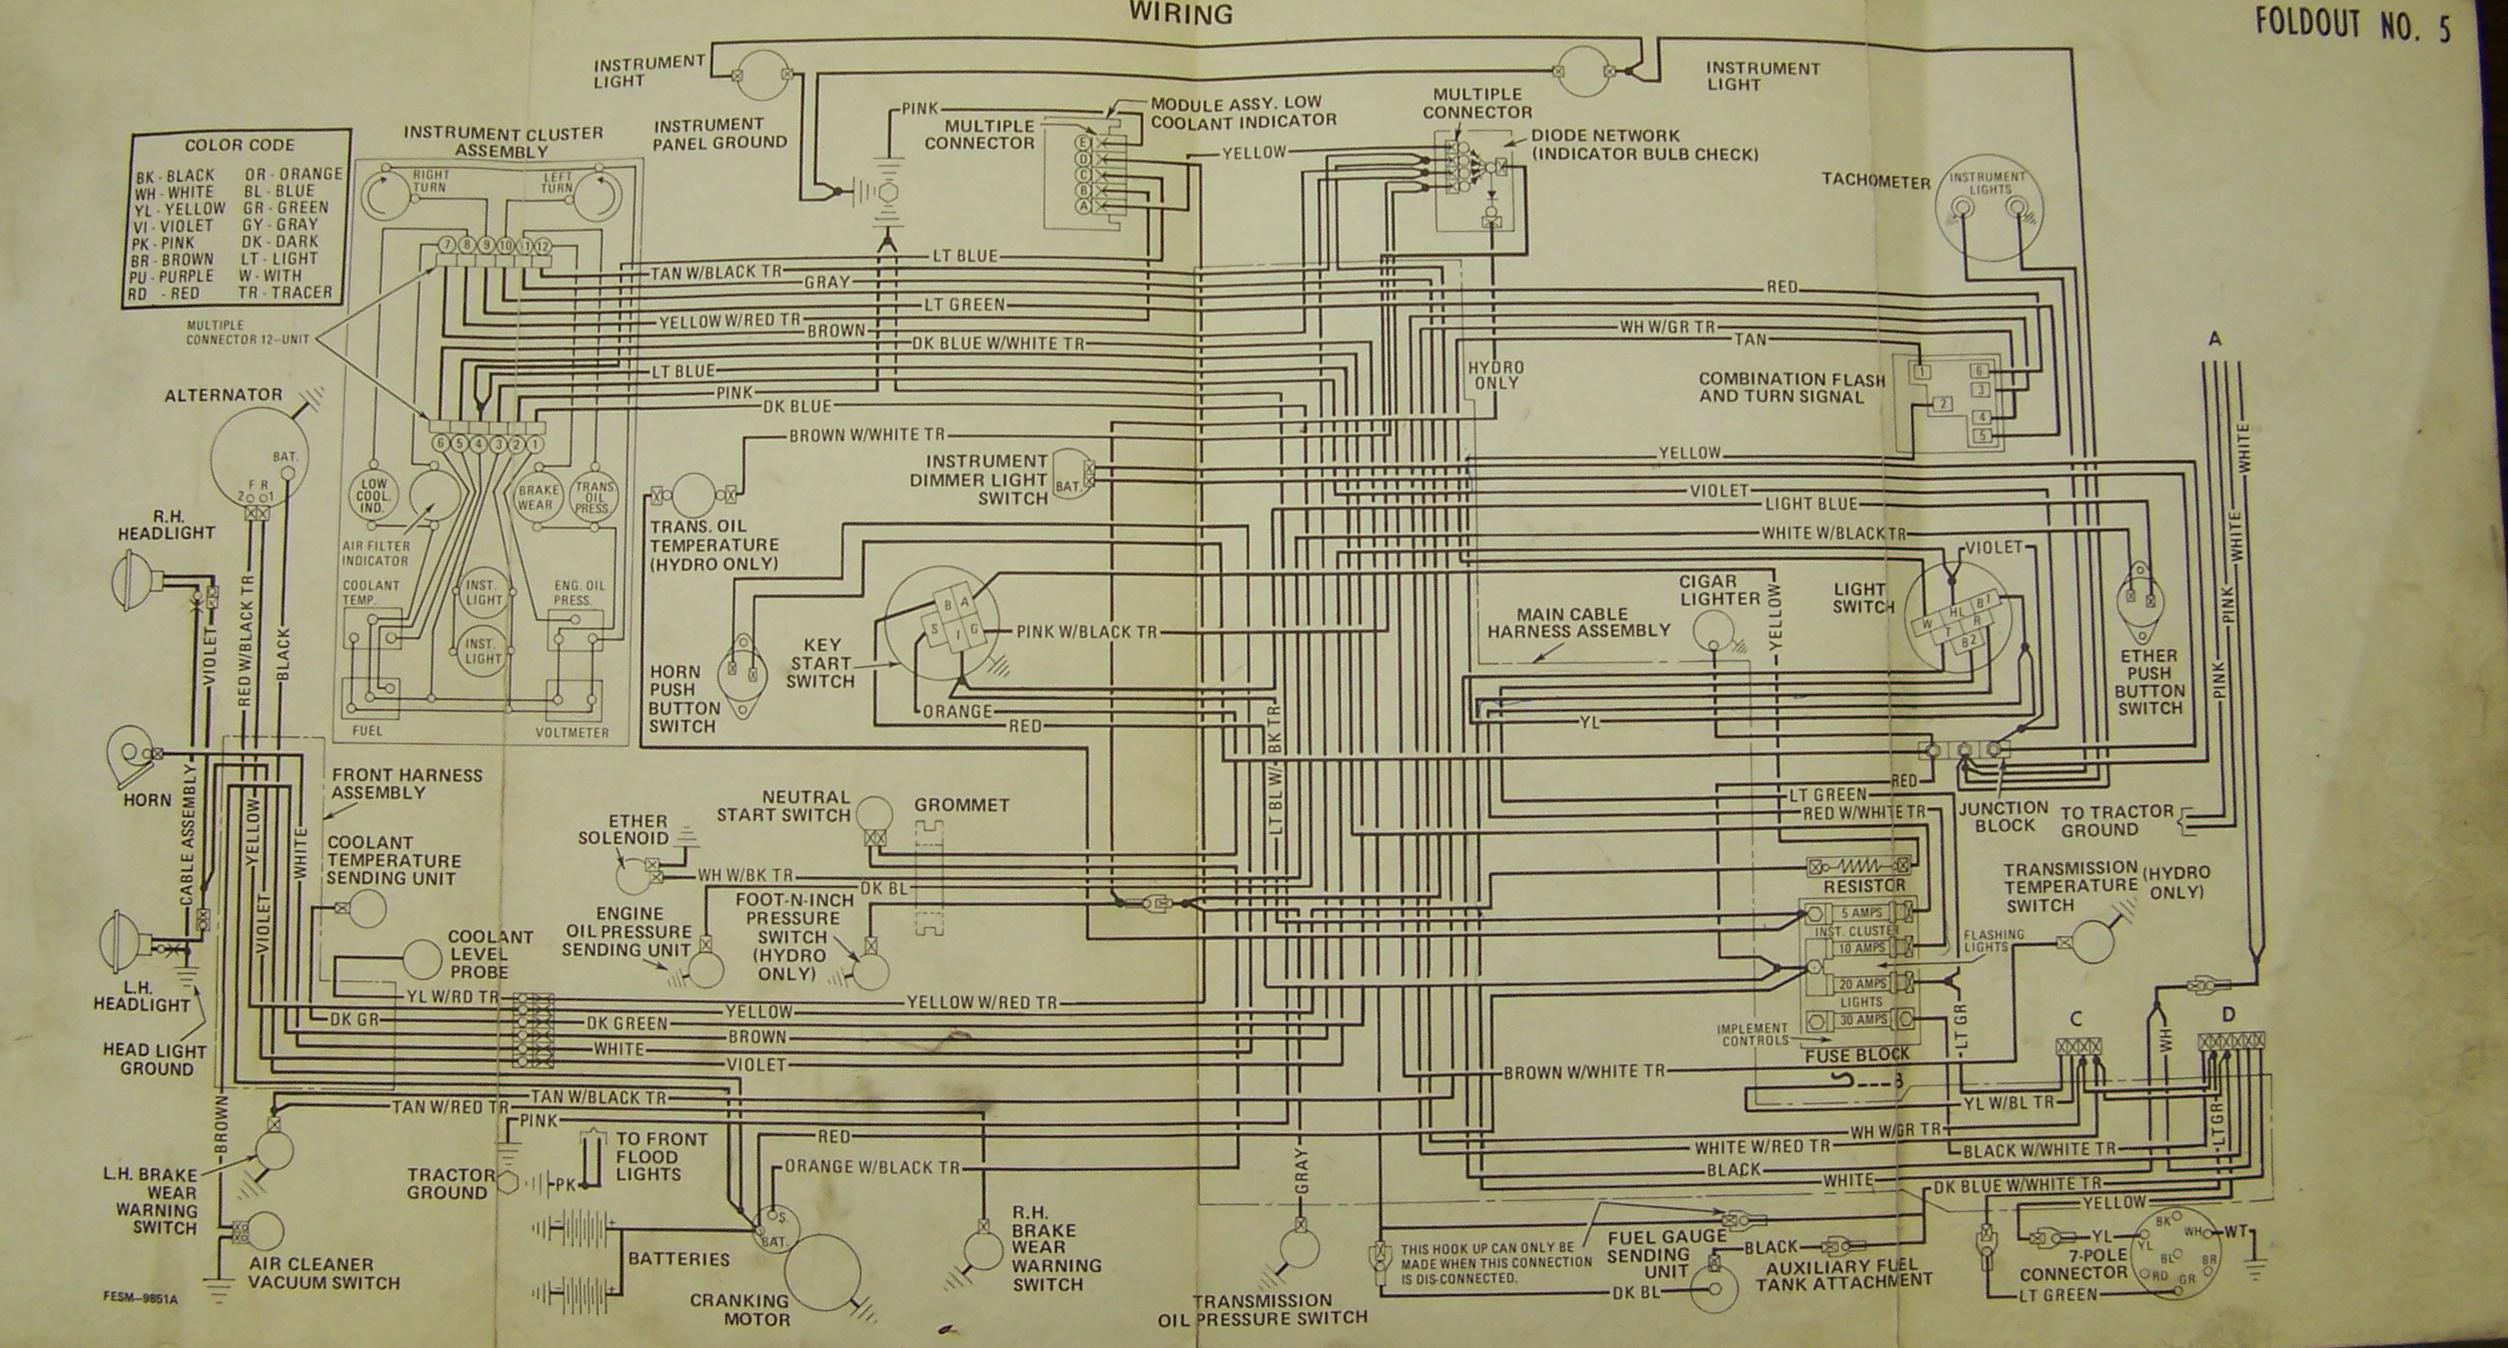 86series5 ih 574 wiring diagram case 430 tractor wiring diagram \u2022 wiring ford 2000 tractor ignition switch wiring diagram at soozxer.org